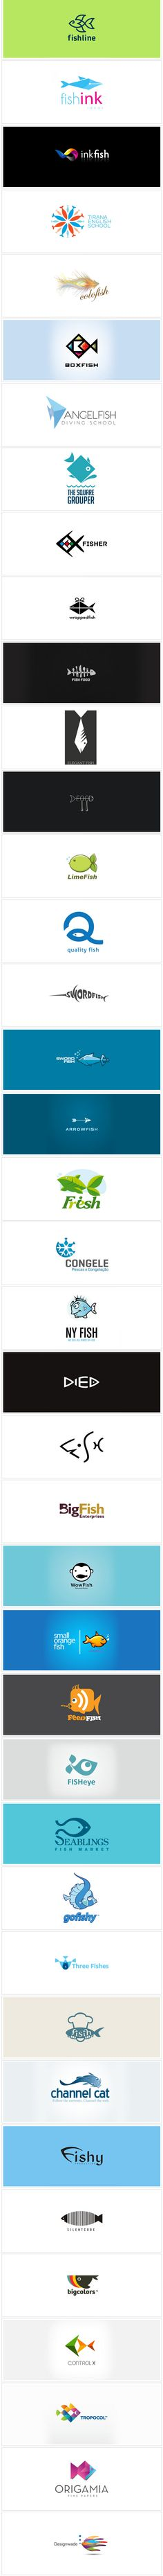 40 logos inspired by fish